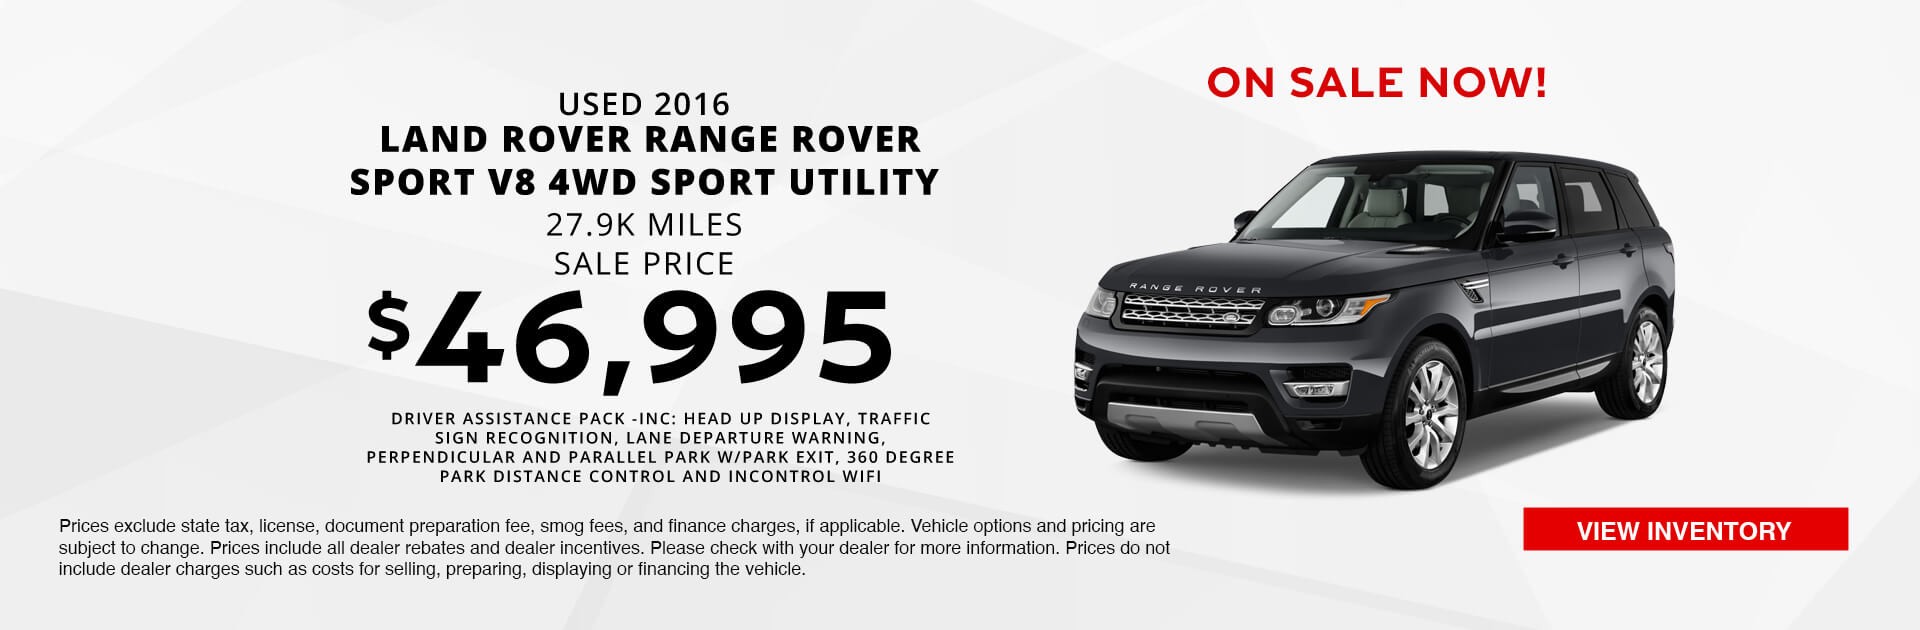 Used Land Rover Purch